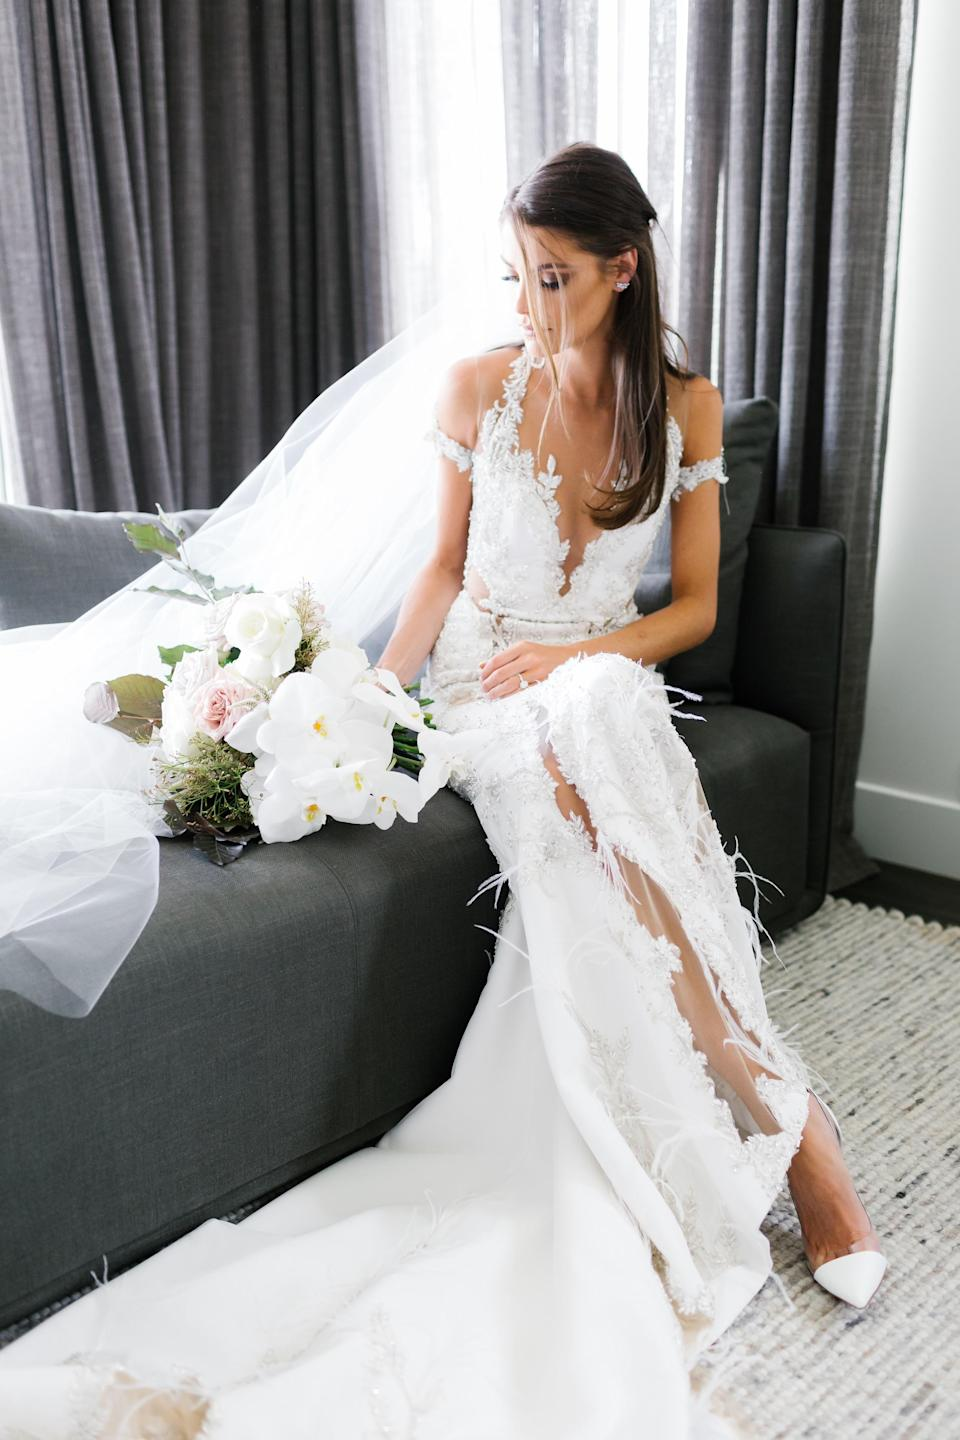 """Charlotte's gown was """"fully hand beaded with details in tiny mirror backed Swarovski crystals, thousands of both bugle and seed beads, hand embroidered floral stems using bullion thread and silk thread foliage"""". Photo: Chloe May"""